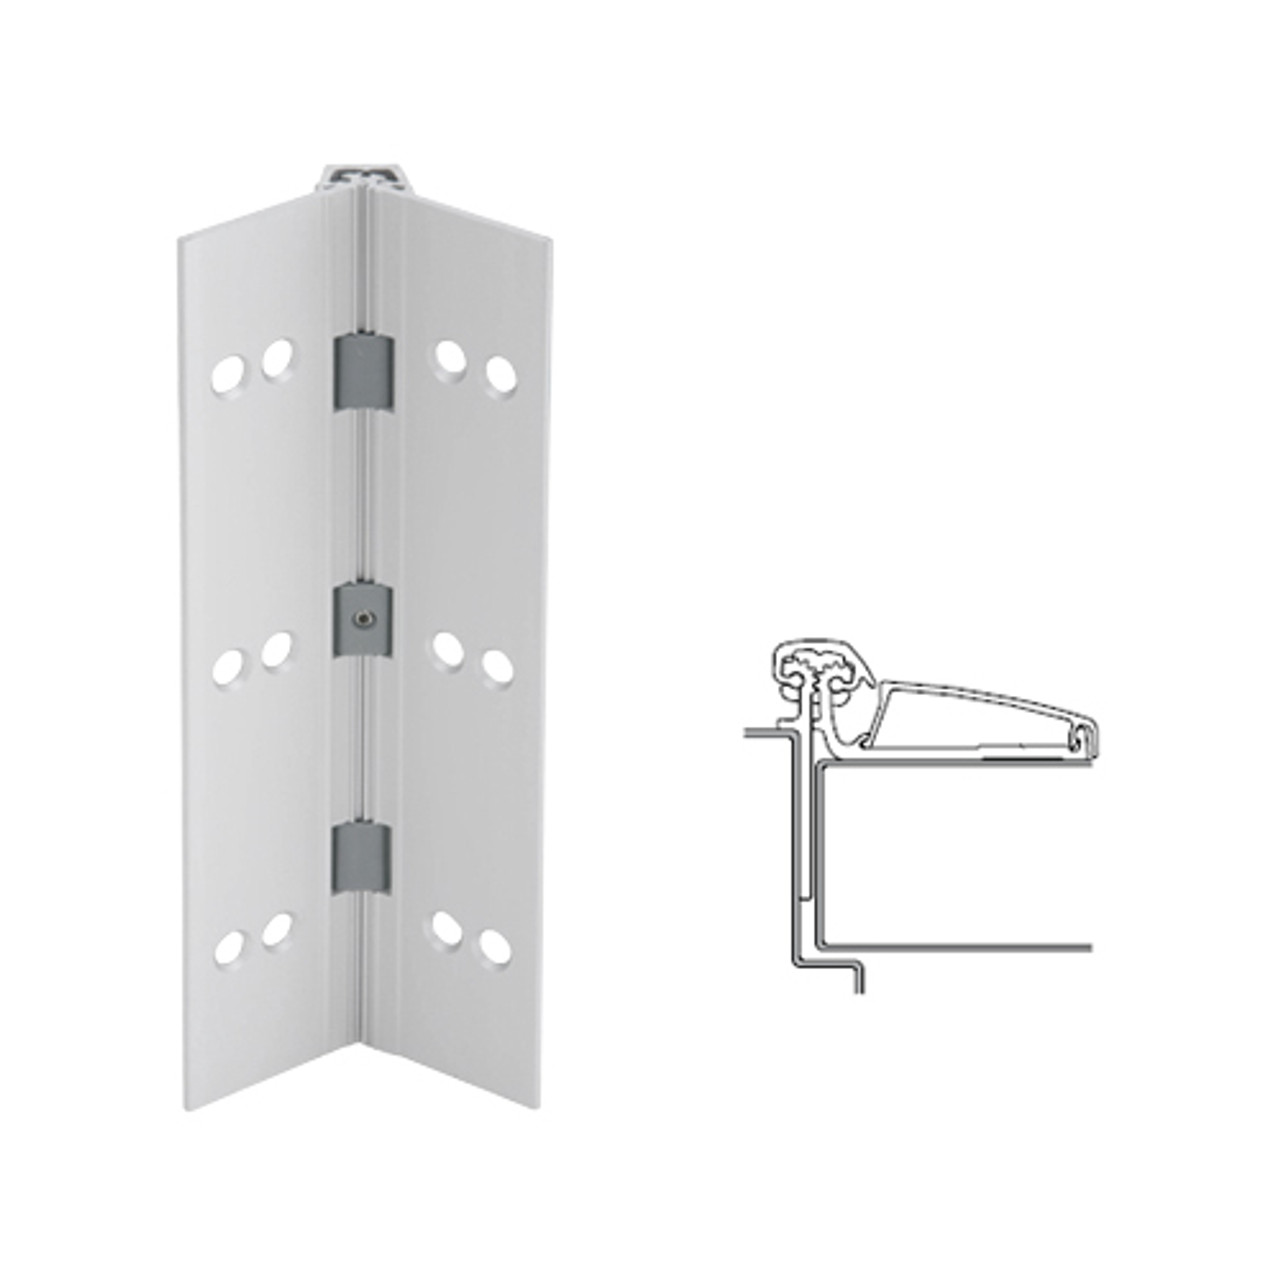 045XY-US28-85-TEKWD IVES Adjustable Half Surface Continuous Geared Hinges with Wood Screws in Satin Aluminum